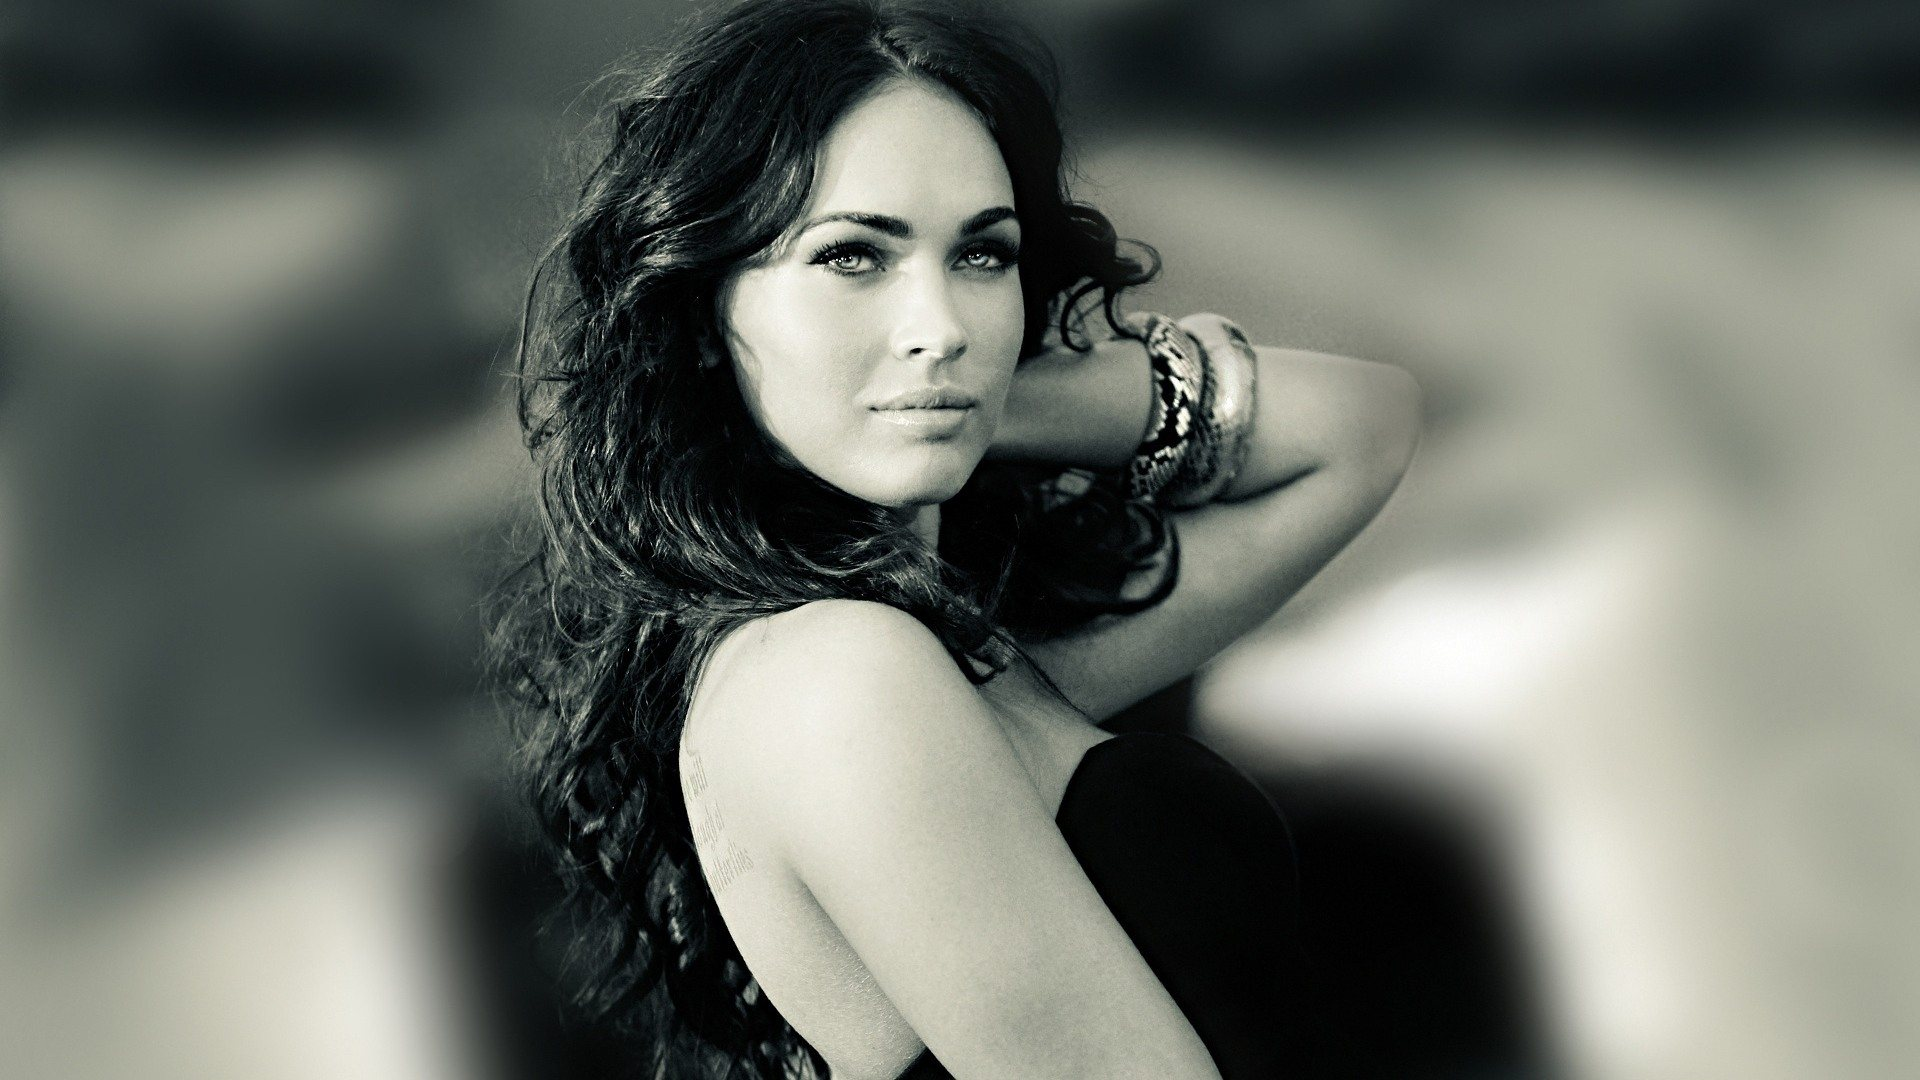 Megan Fox widescreen for desktop